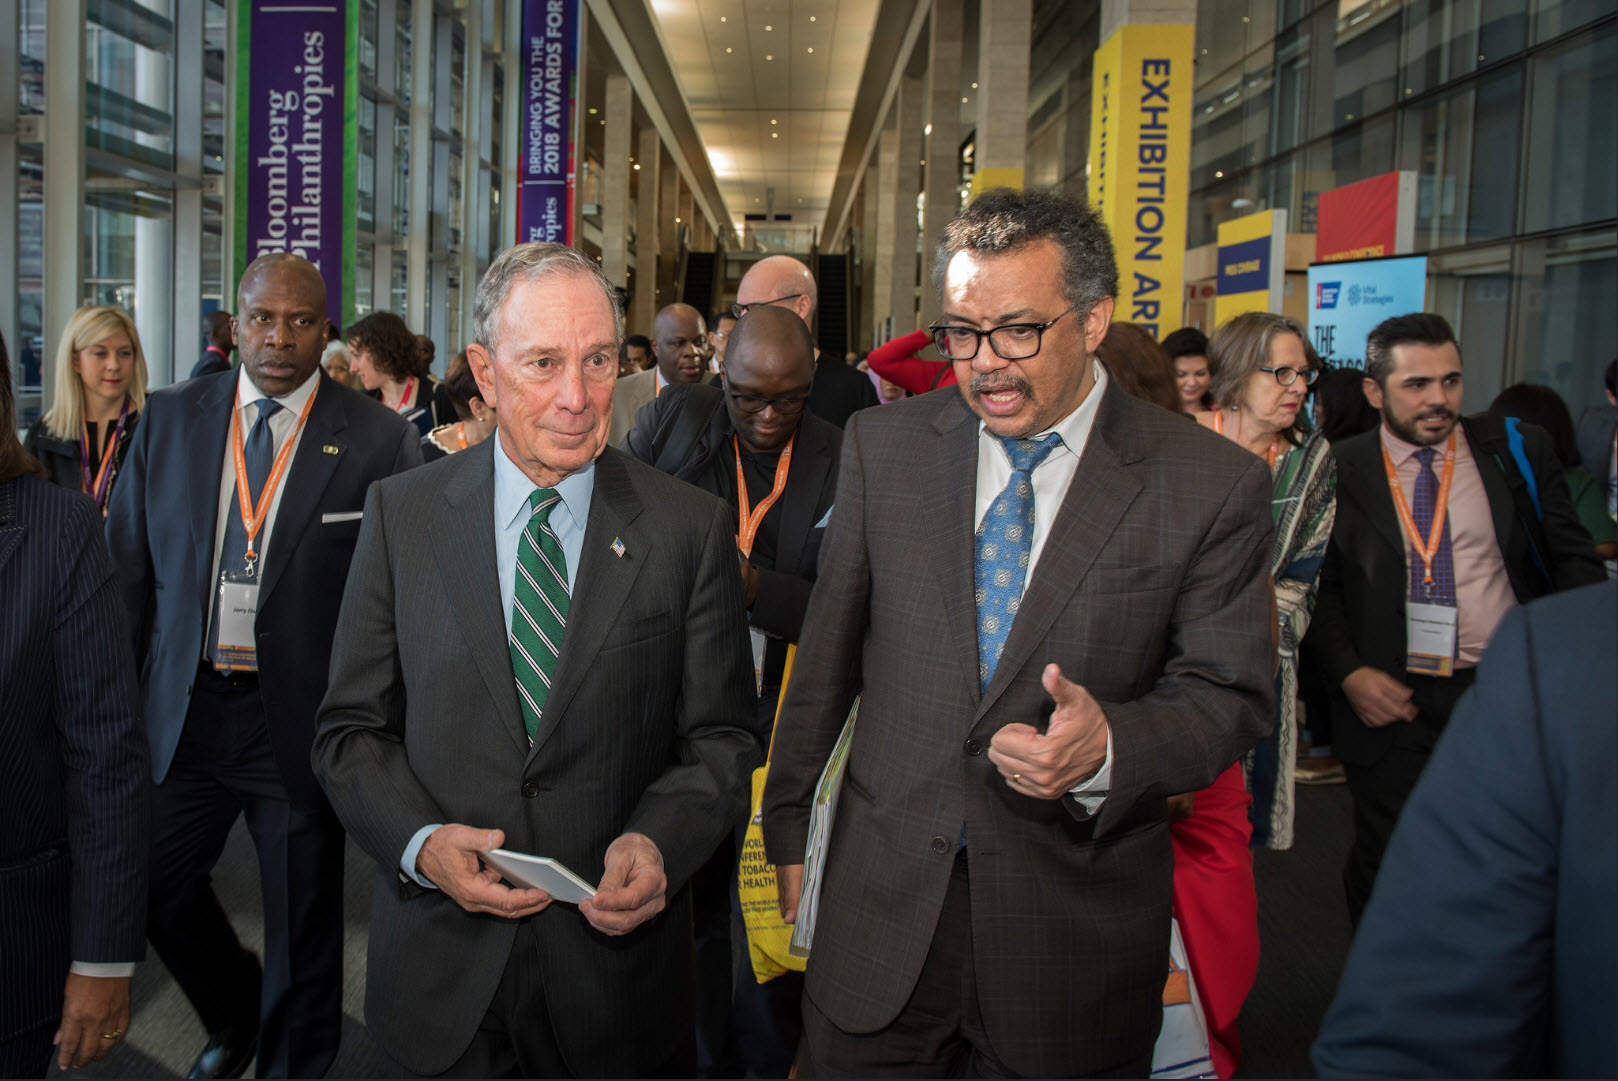 Mike Bloomberg and World Health Organization Director-General Dr. Tedros Adhanom Ghebreyesus